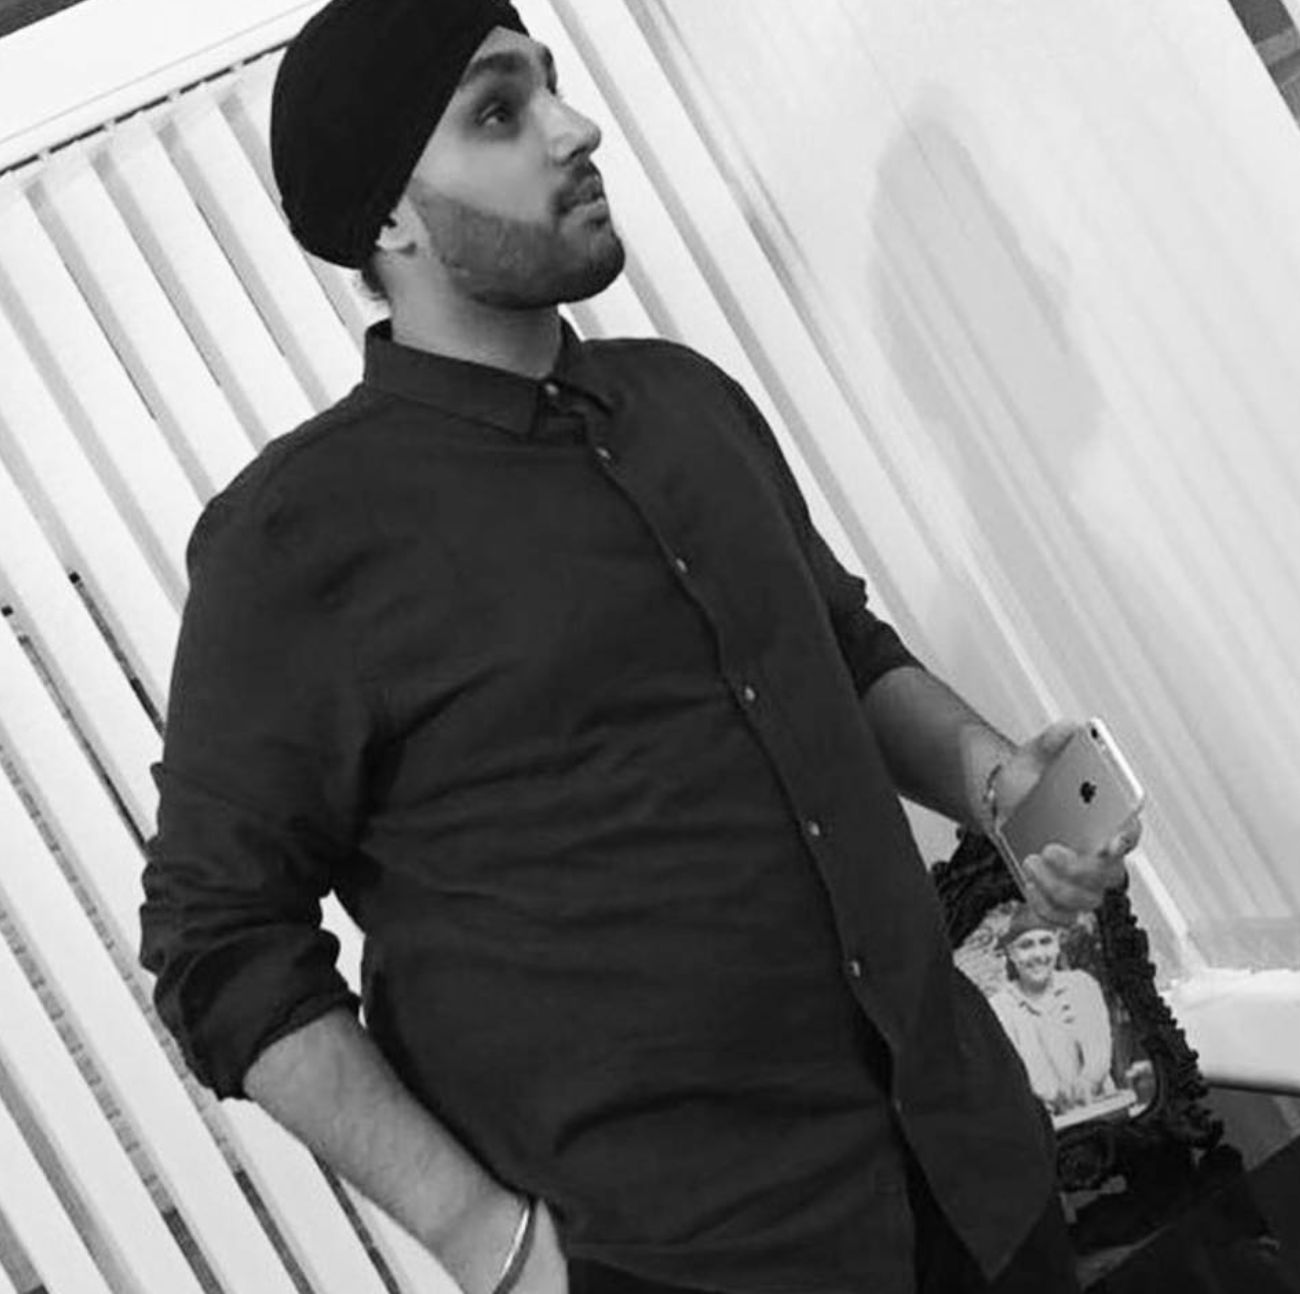 Sikh Student 'Heartbroken' After Being Told To Leave Mansfield Bar Because Of